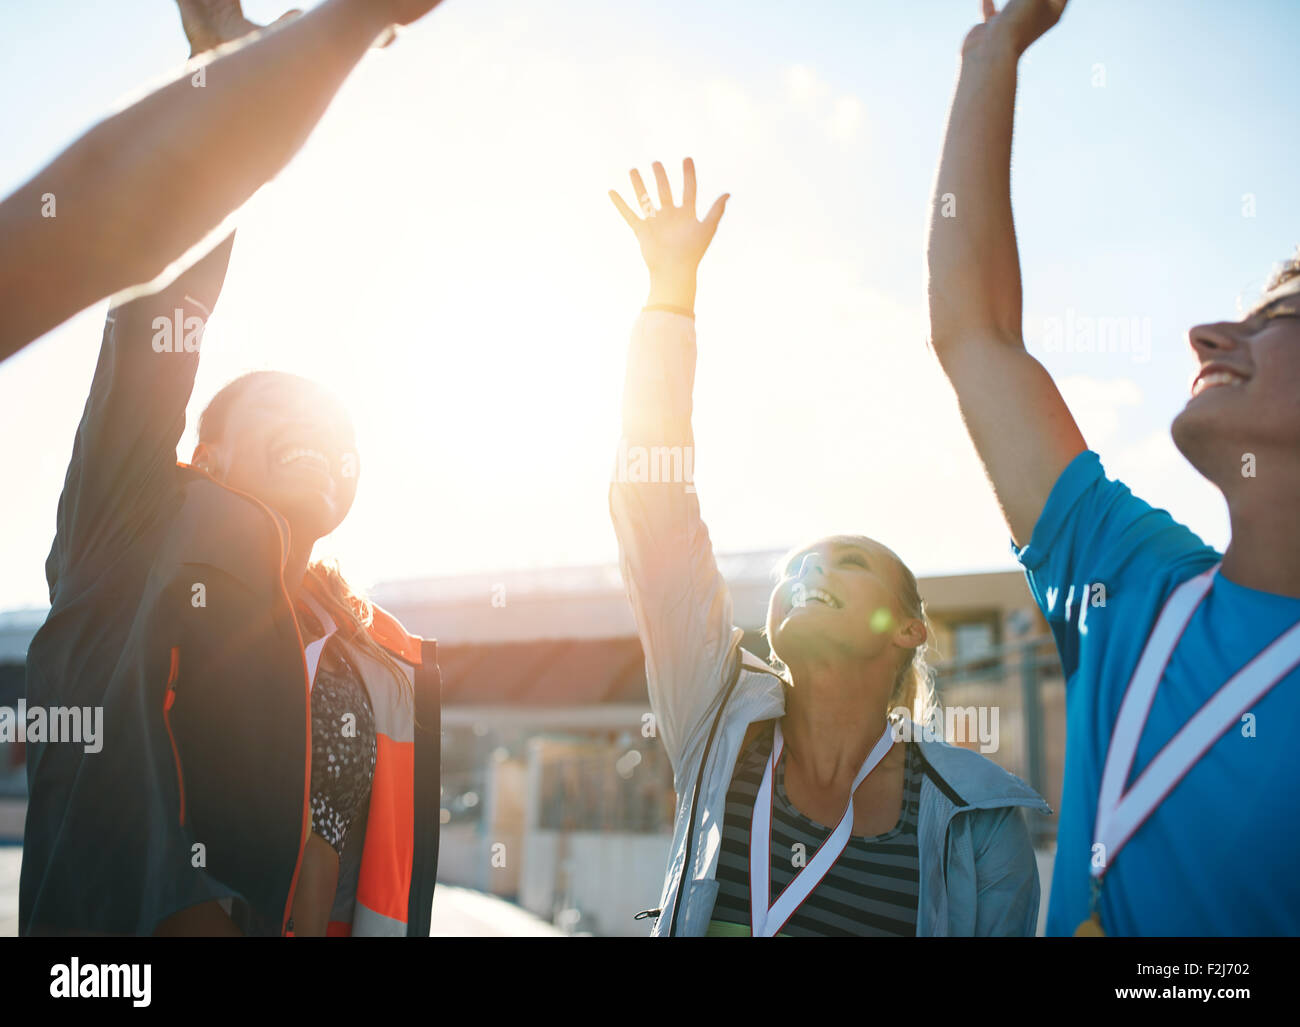 Group of young athletes celebrating success while standing in a huddle. Successful team of athletes cheering victory. - Stock Image